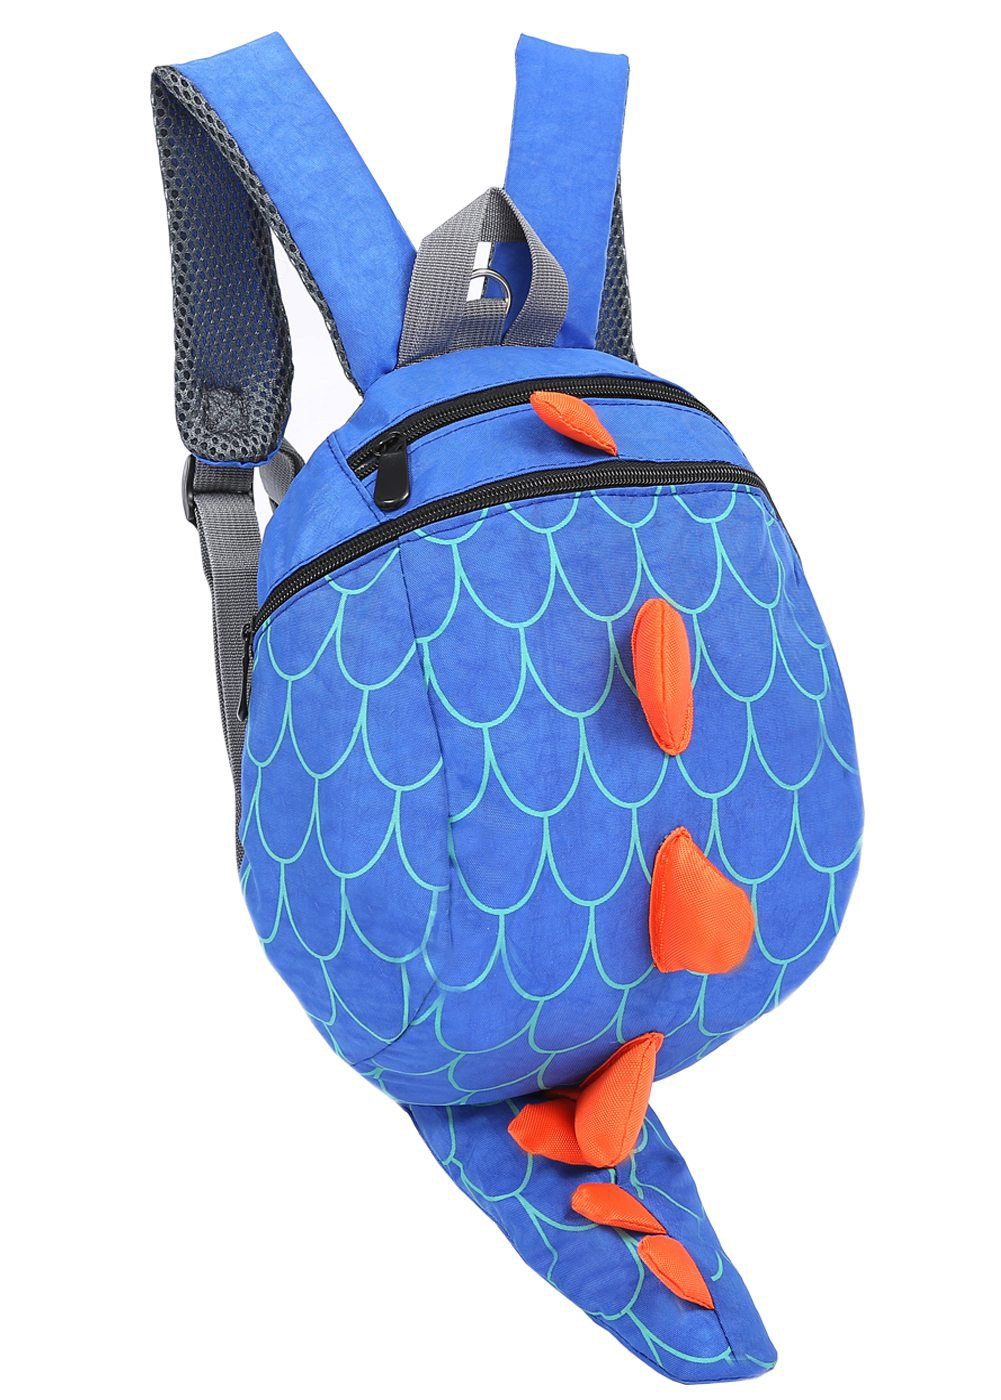 ZHUANNIAN Toddlers Dinosaur Backpack Safety